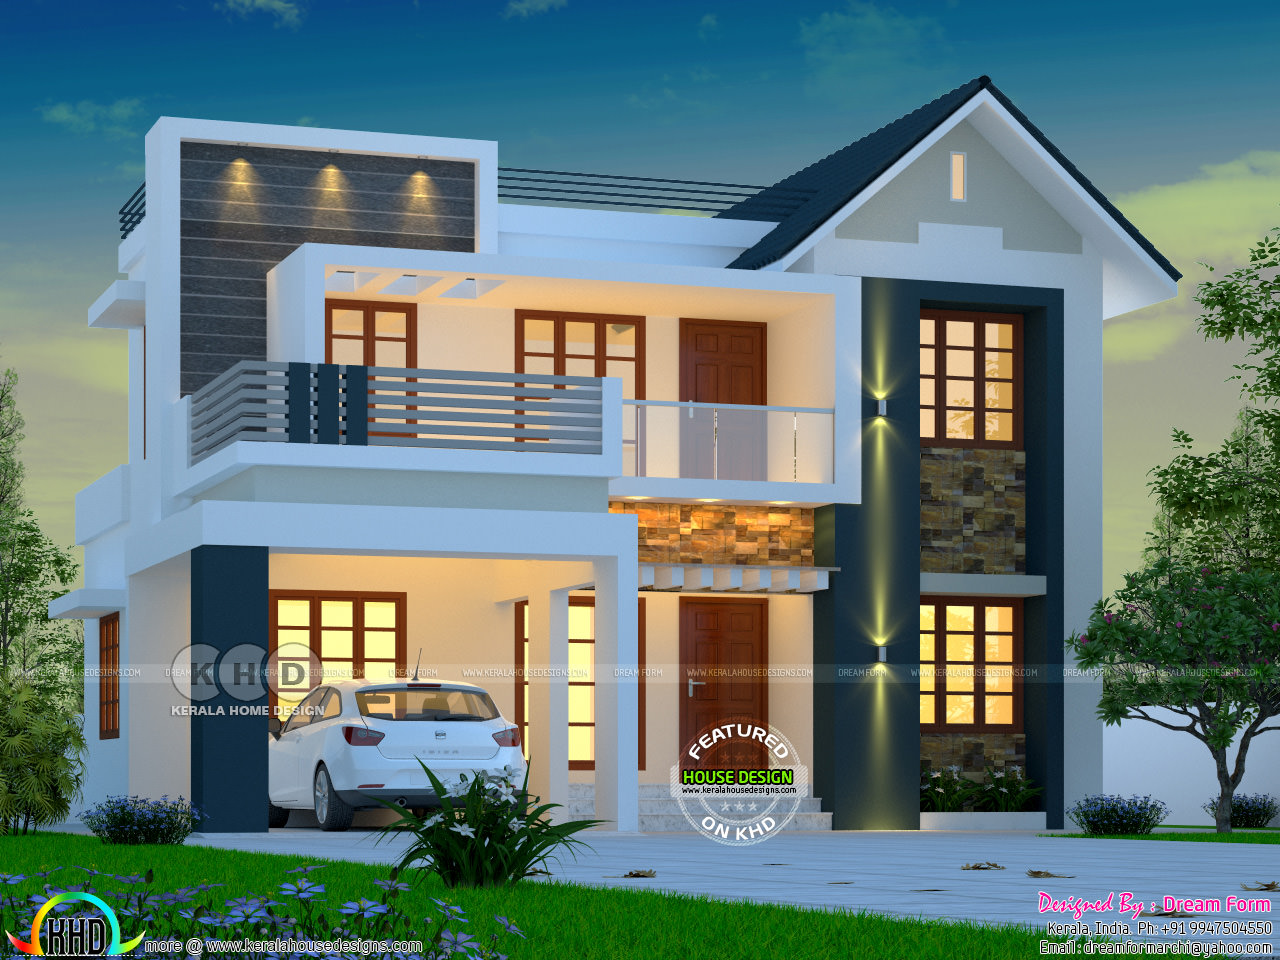 awesome sloped roof house - 13+ Modern Front Design Of House In Small Budget Gif